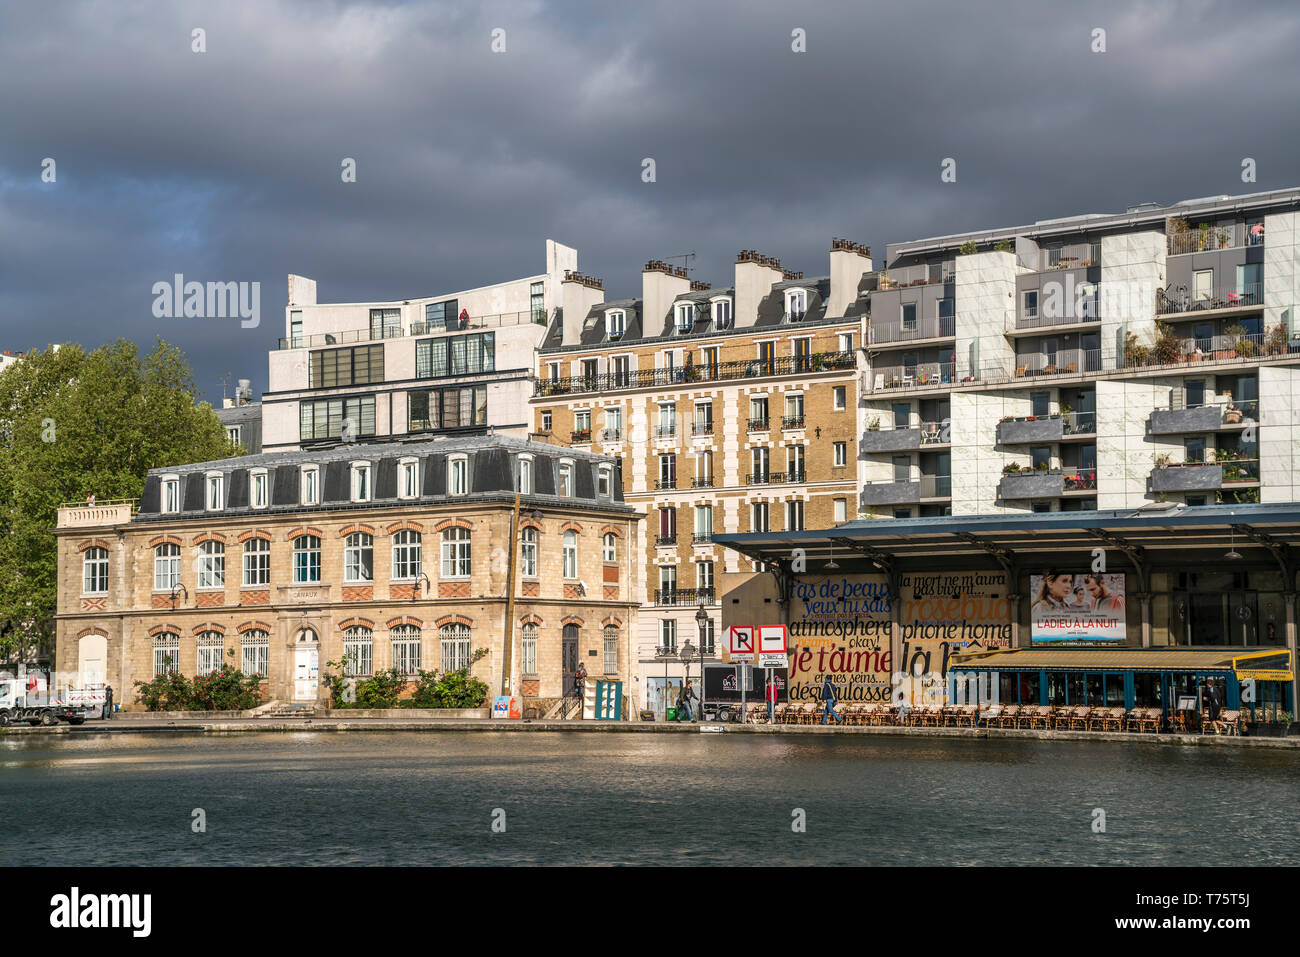 Gastronomie und Apartments am künstlichen Bassin de la Villette,  Paris, Frankreich  |  Restaurant and apartments at the  artificial lake Bassin de la - Stock Image